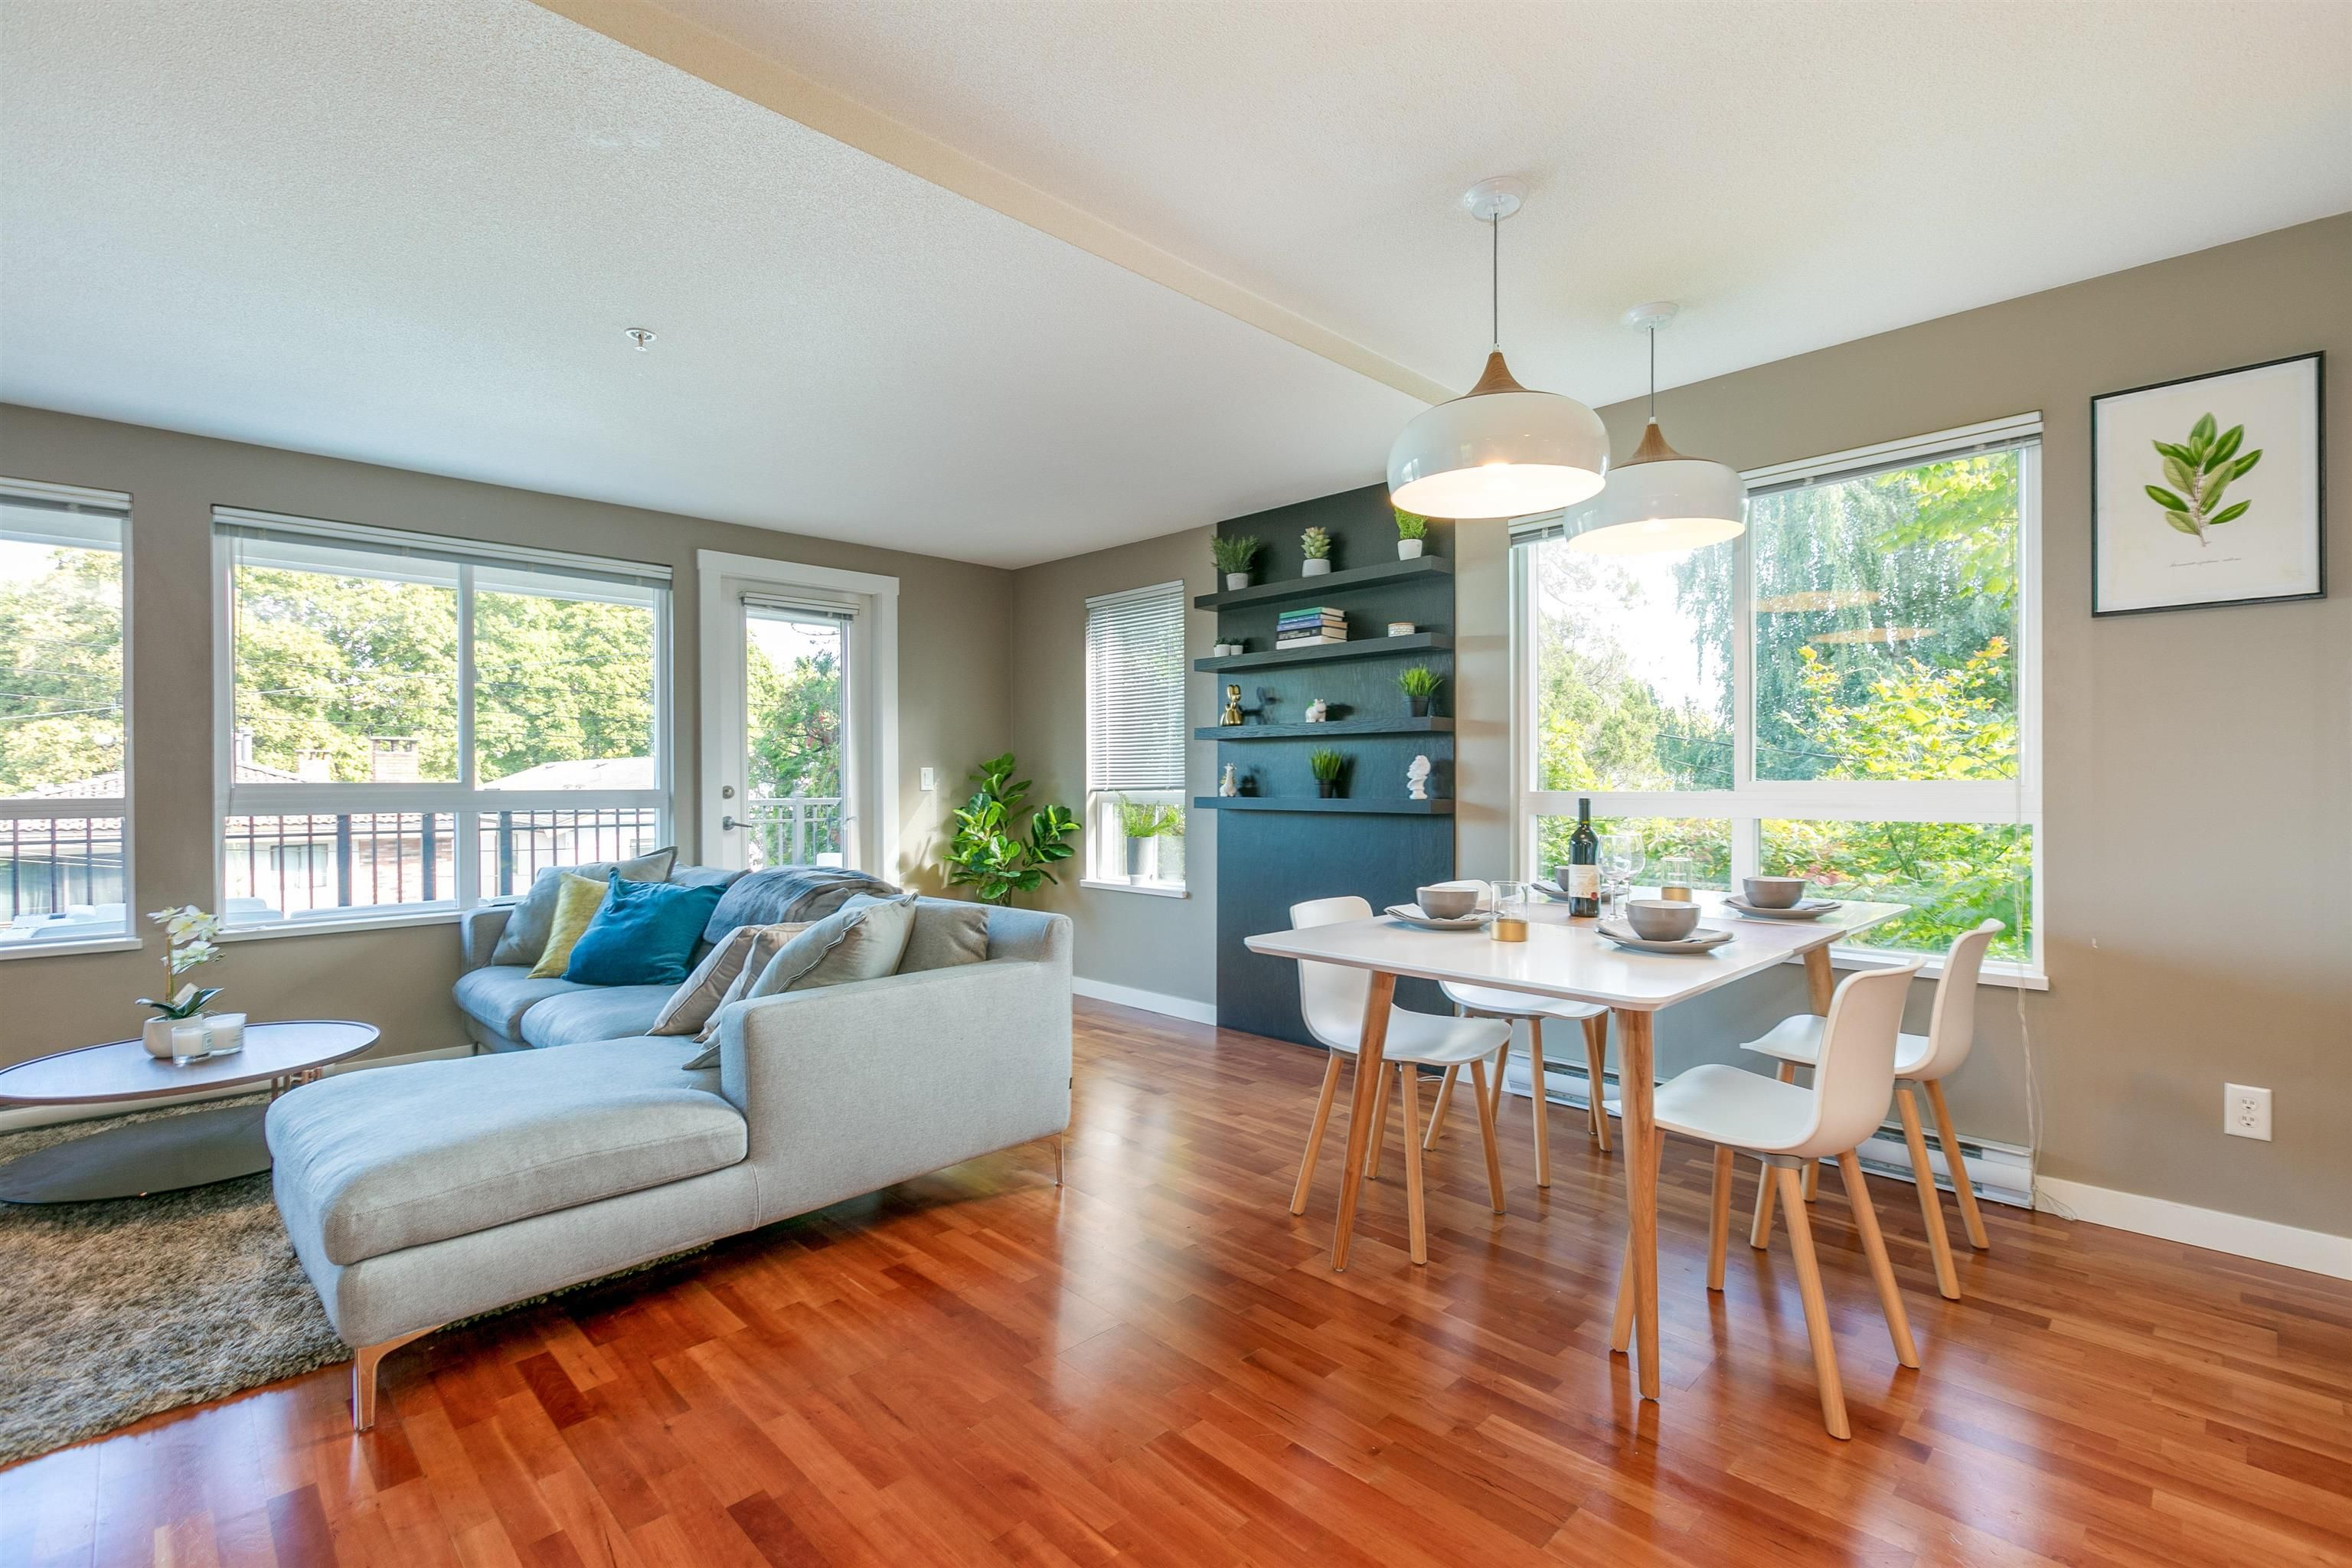 Main Photo: 6 2780 ALMA Street in Vancouver: Kitsilano Townhouse for sale (Vancouver West)  : MLS®# R2618031